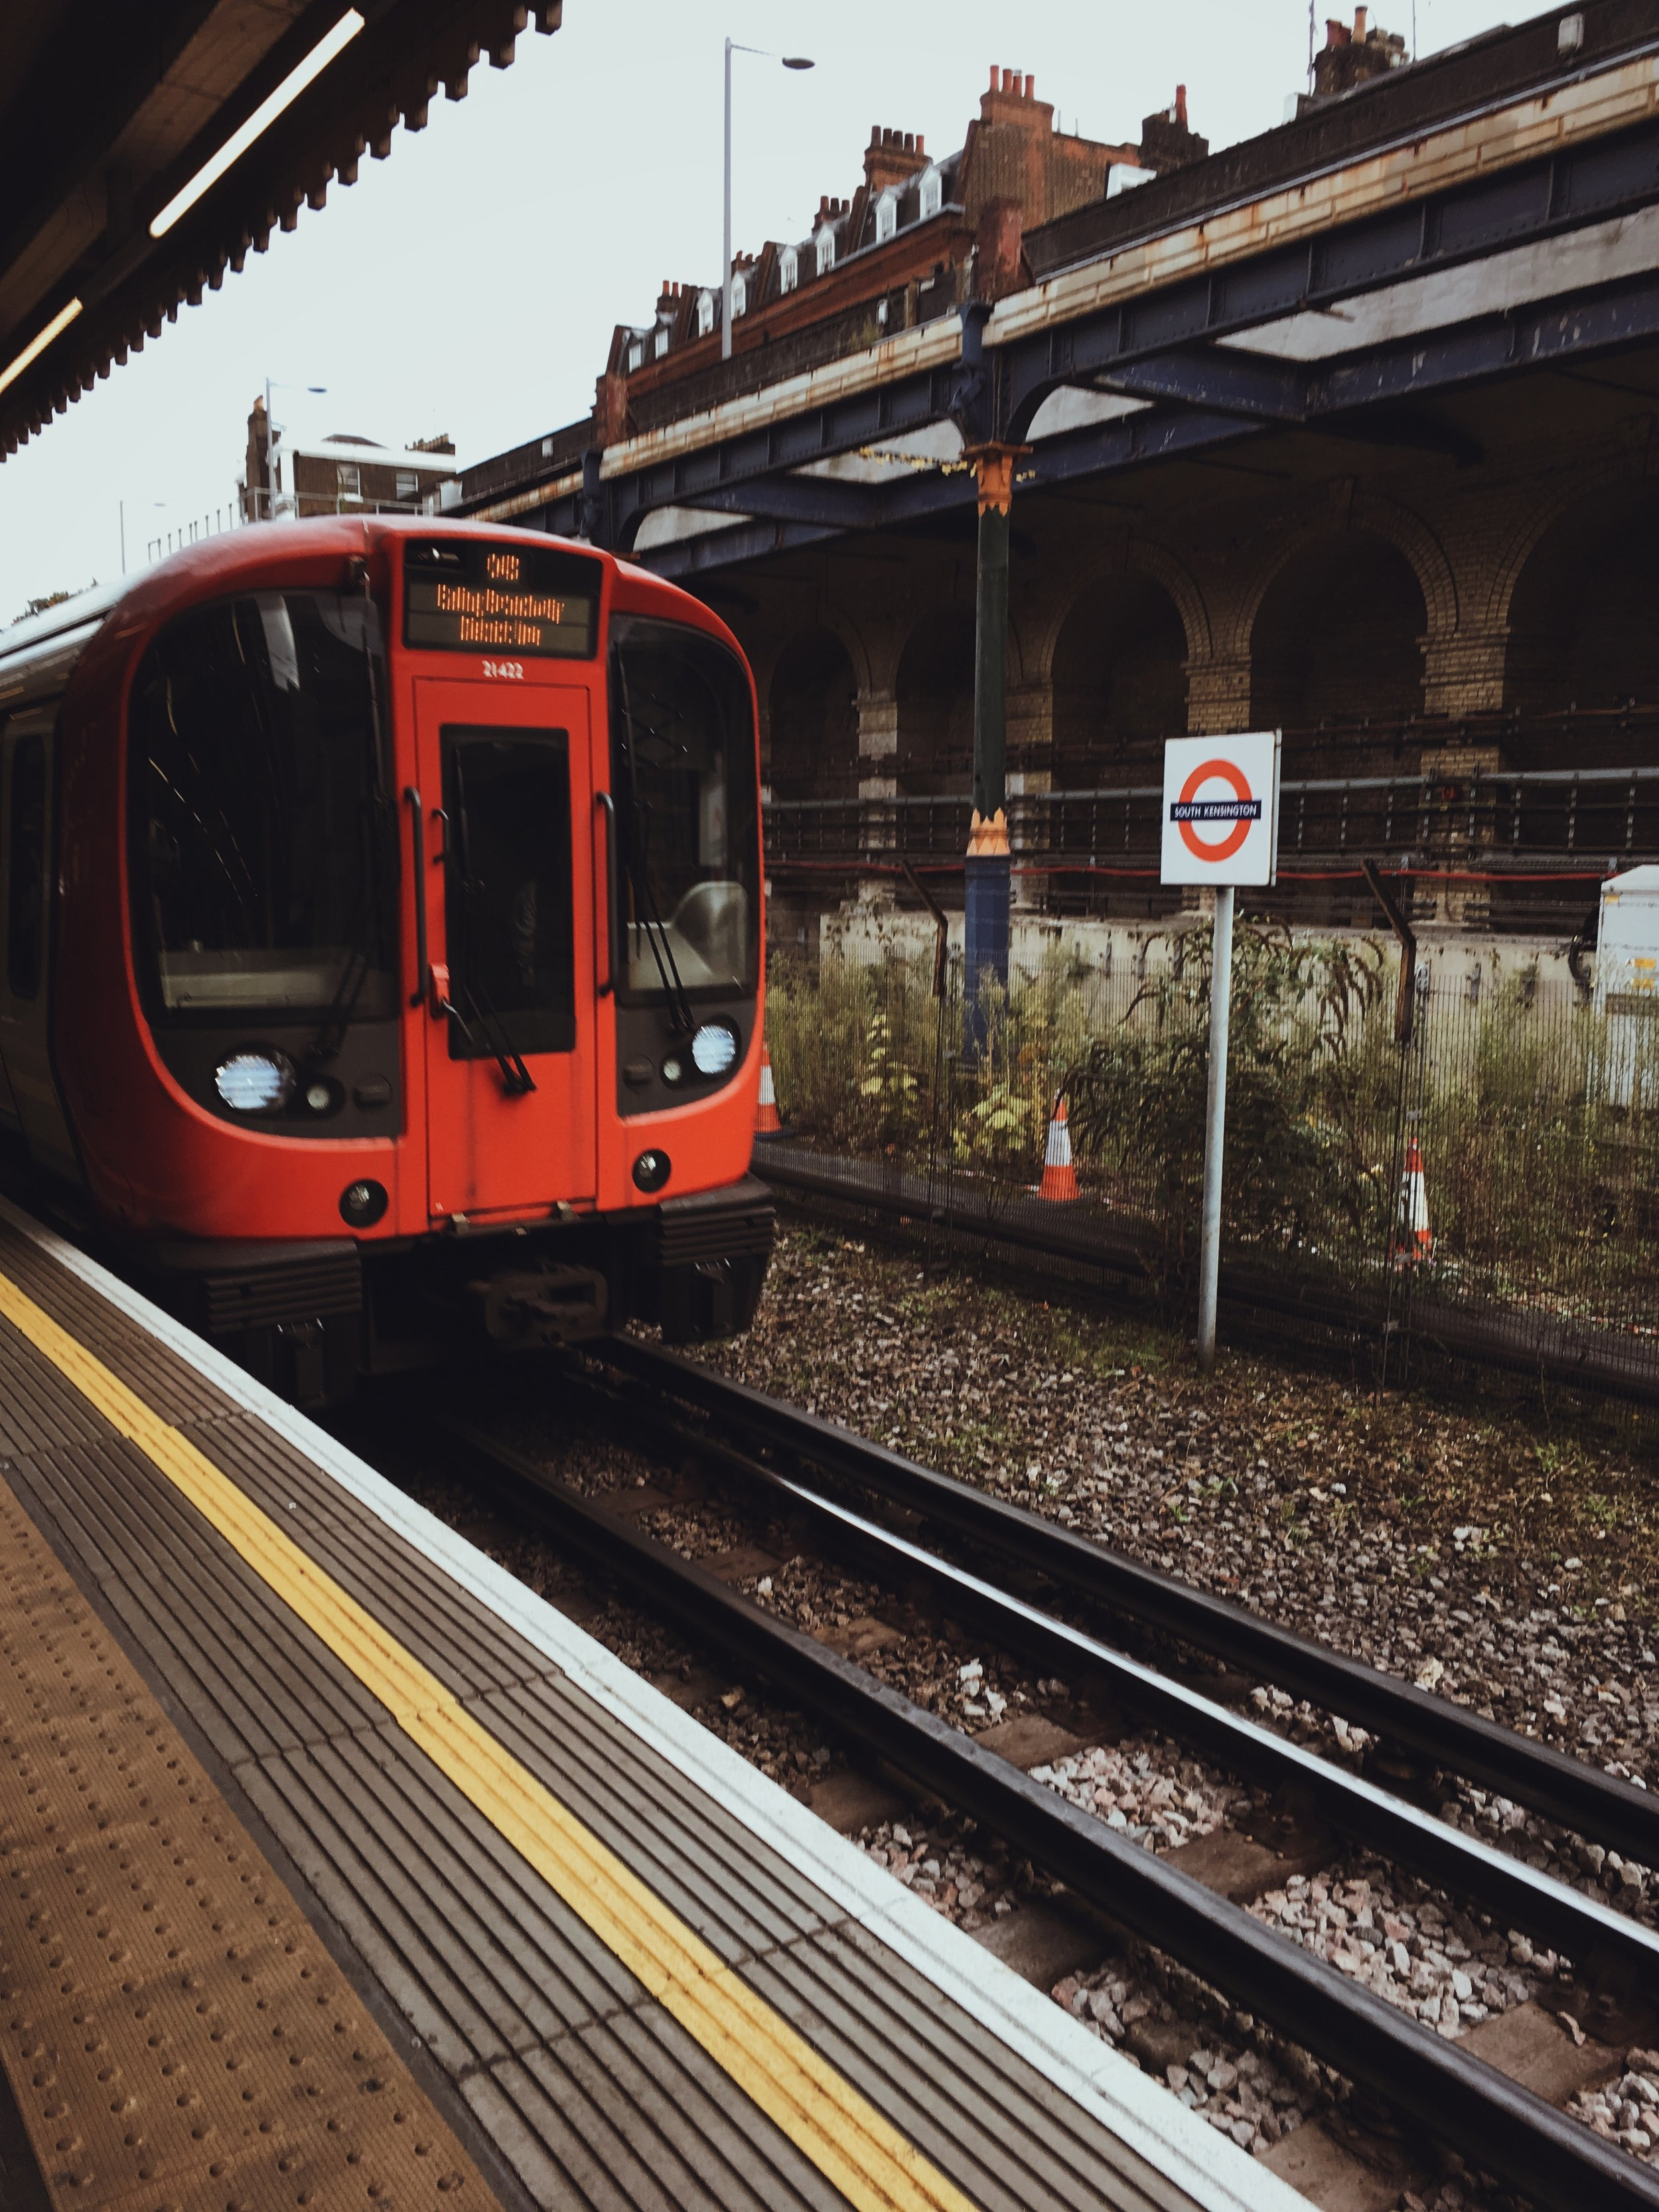 It's a great area to live in, in the west of London and not too far from everything, just a short tube ride to get to College